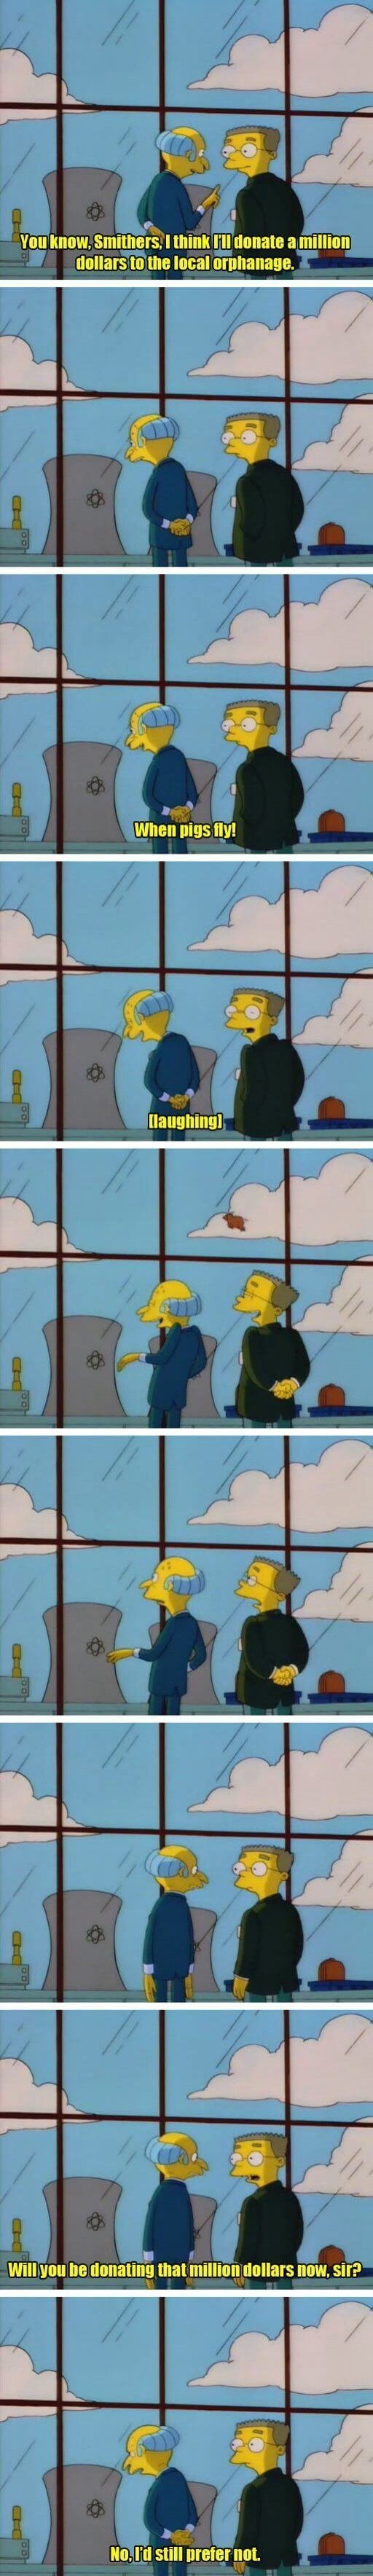 mr burns sayings 5 (1)